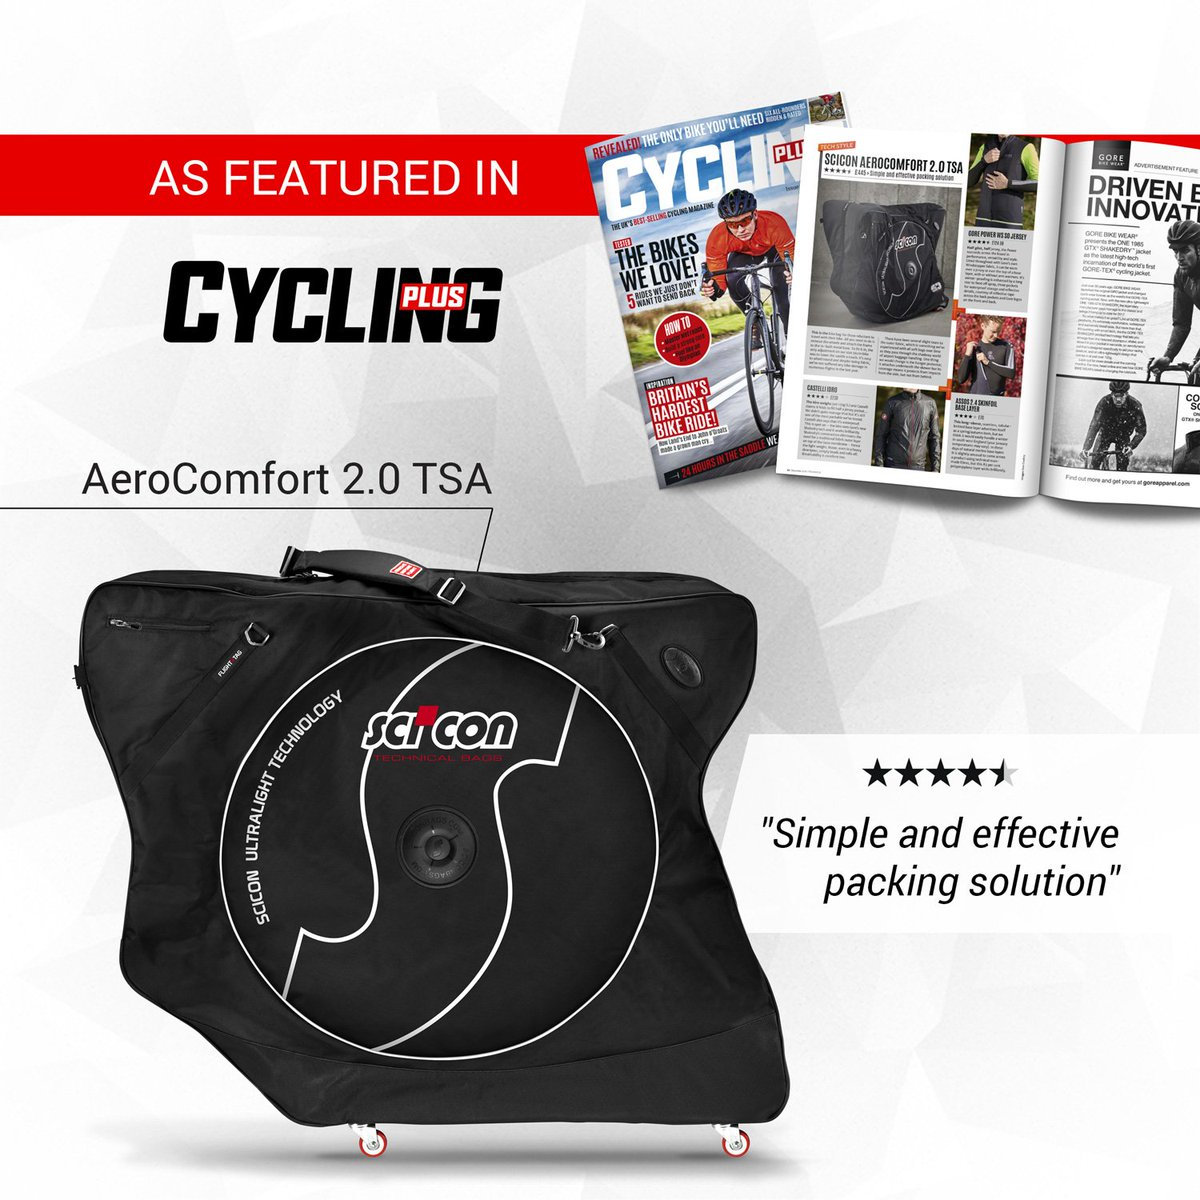 Scicon Bags On Twitter Top Review Of The Aerocomfort 2 0 Tsa Bikebag In This Month S Cyclingplus Now Https T Co I6pnppnw3e